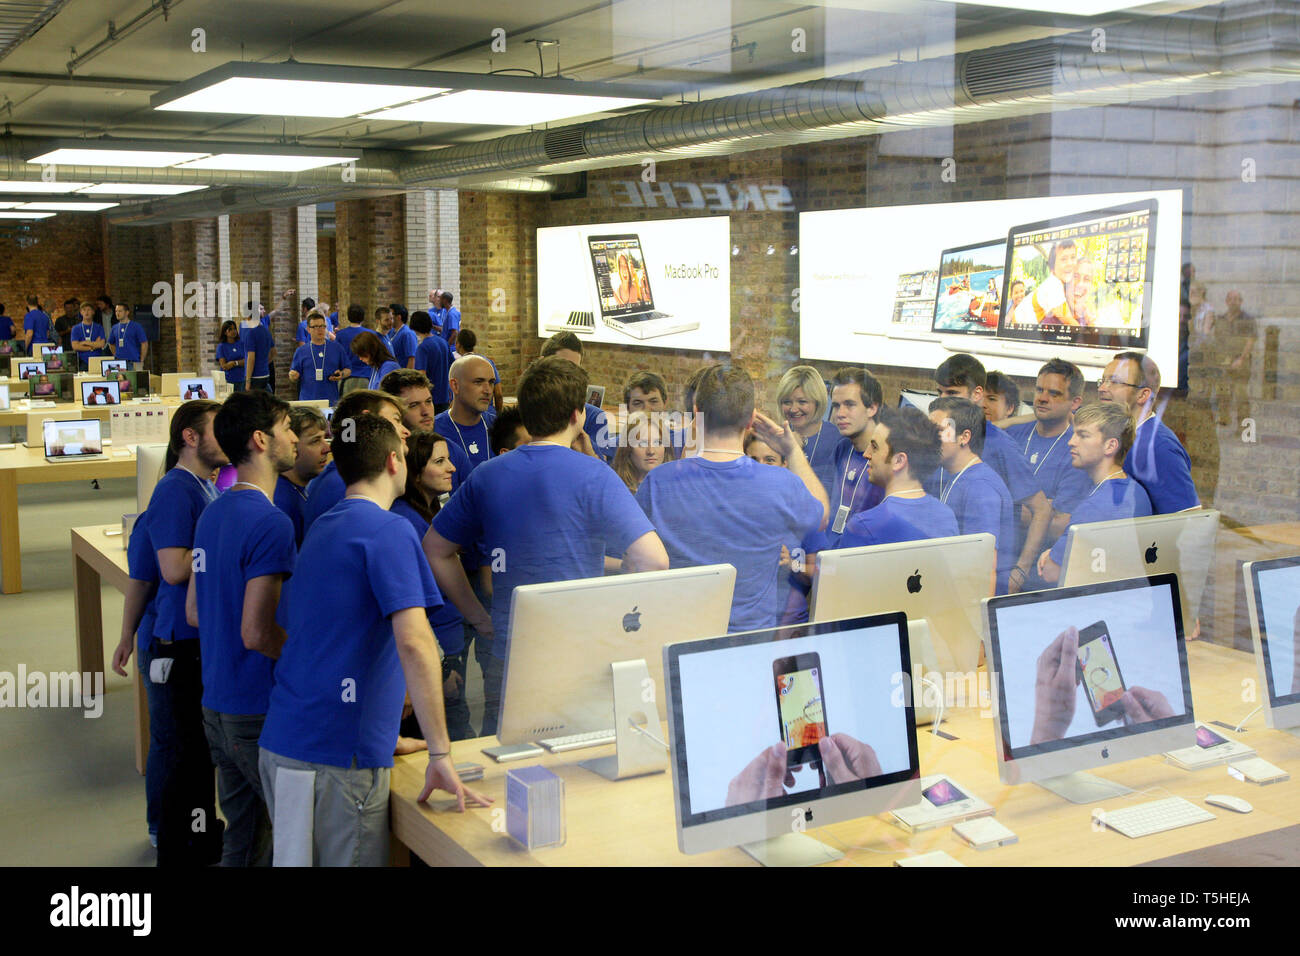 Staff having a team talk before Apple opens a new store in Covent Garden, London. 7 August 2010. - Stock Image